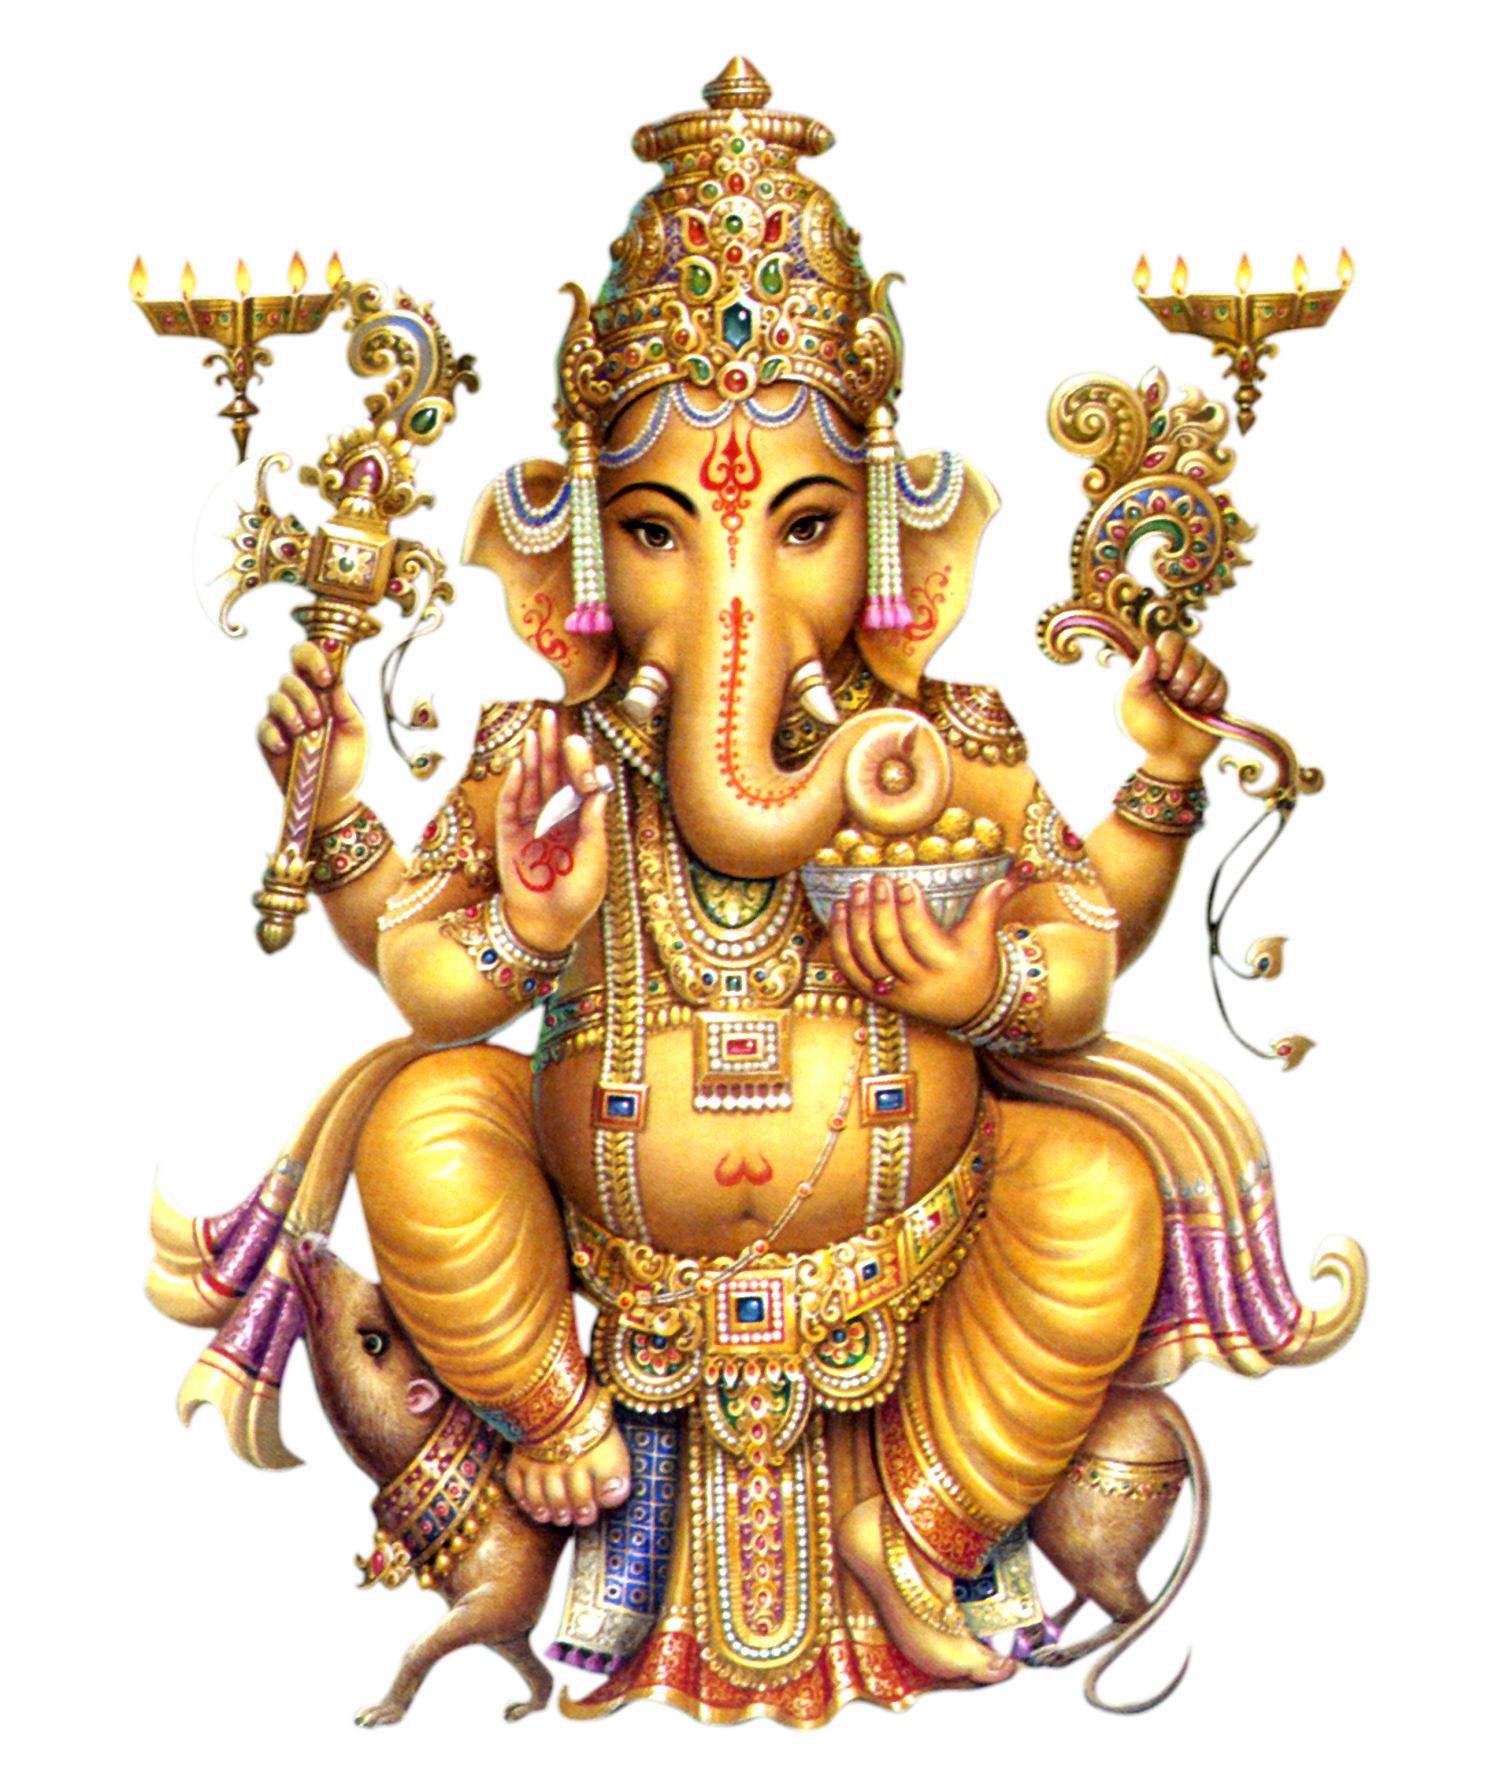 Lord Ganesha is the deity revered by Sri Ketu